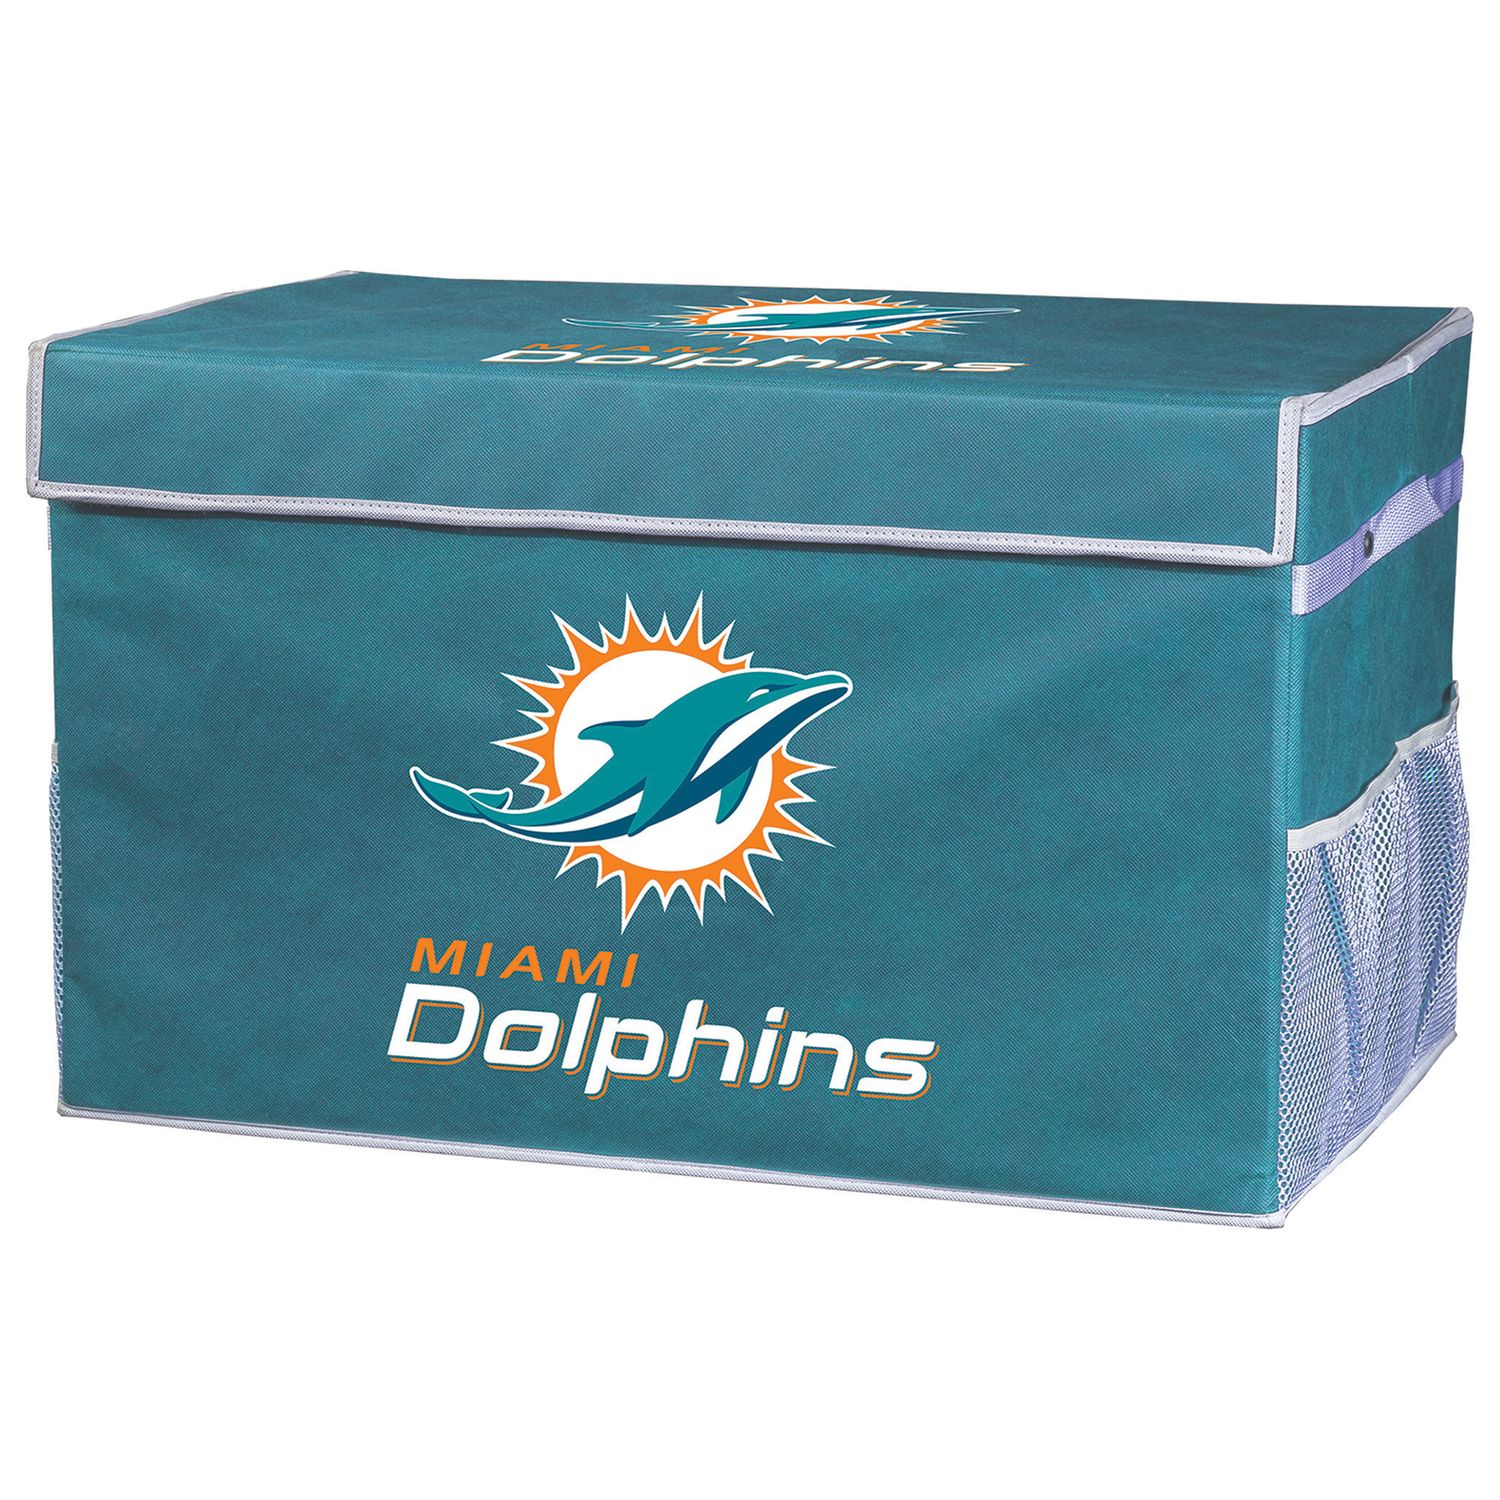 Franklin Sports Miami Dolphins Large Collapsible Footlocker Storage Bin